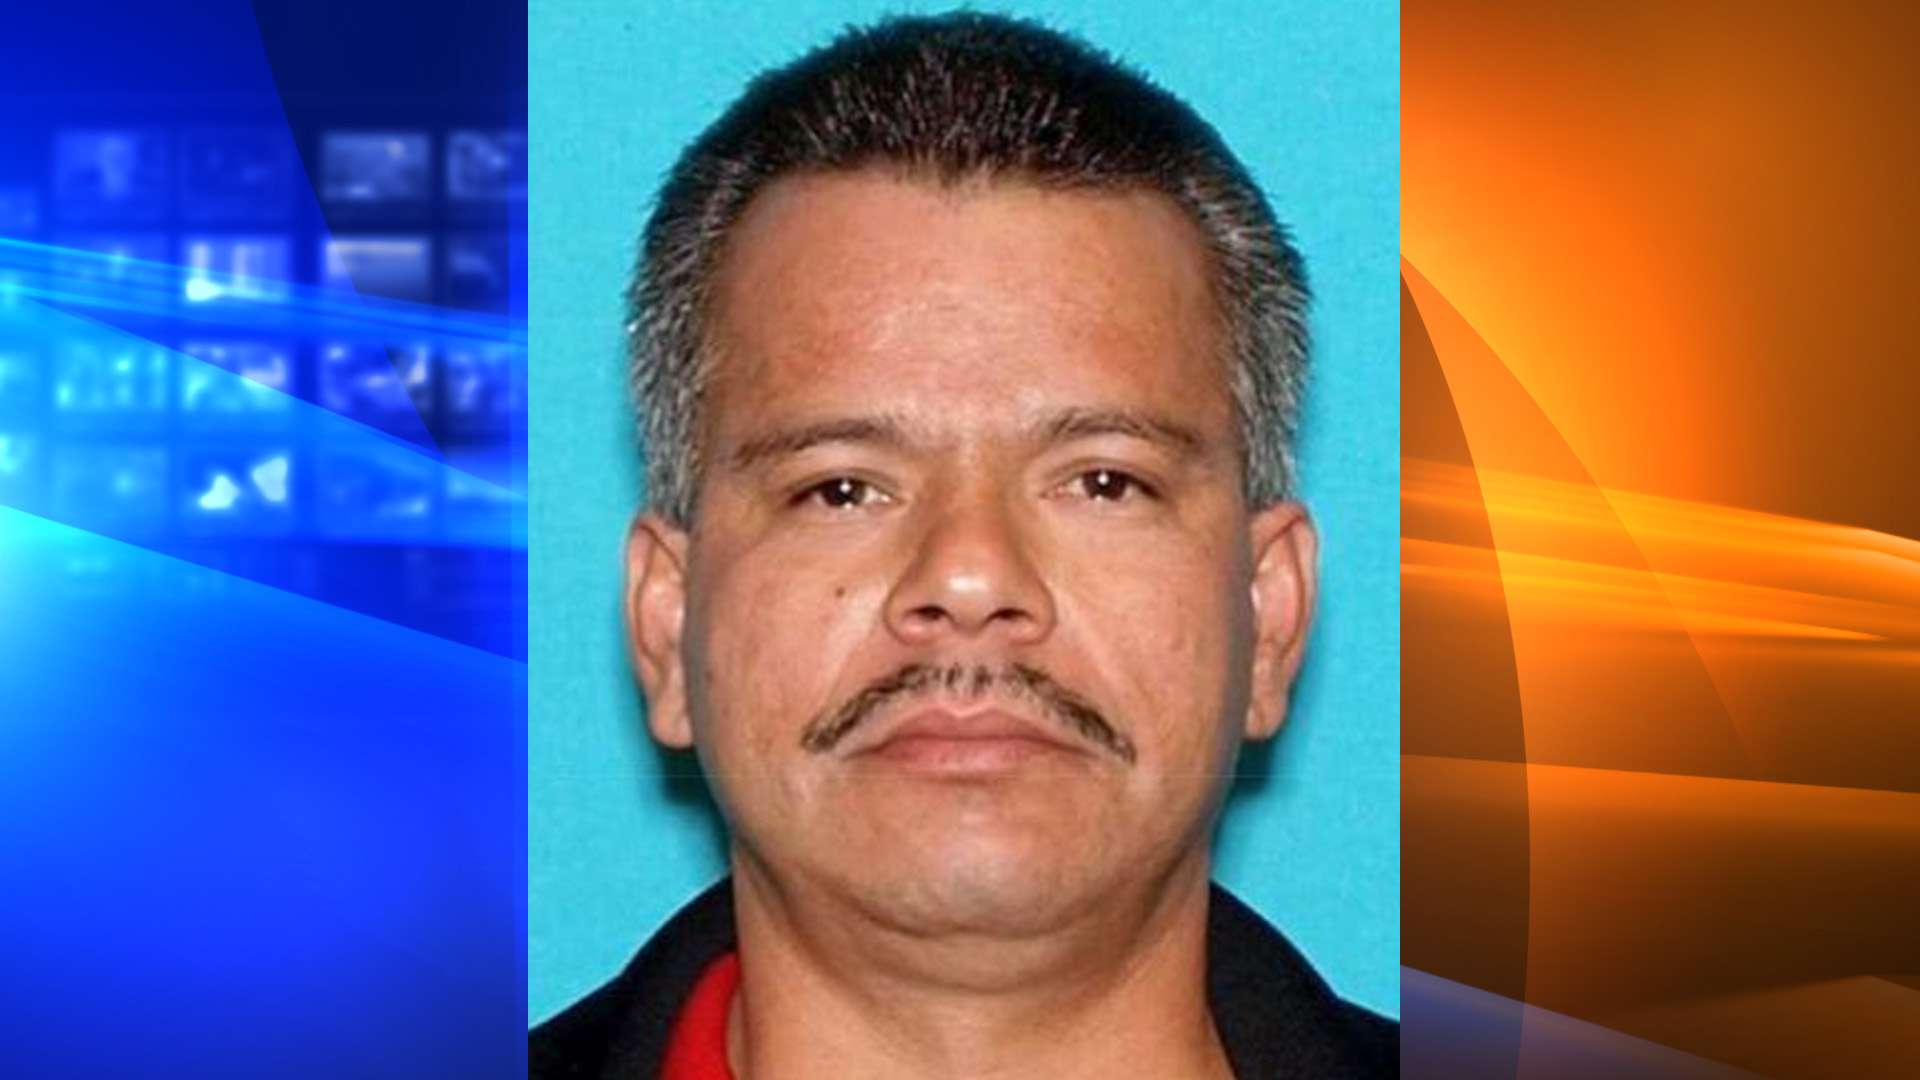 The Riverside County Sheriff's Department tweeted this image of Raul Vega on Aug. 4, 2018.